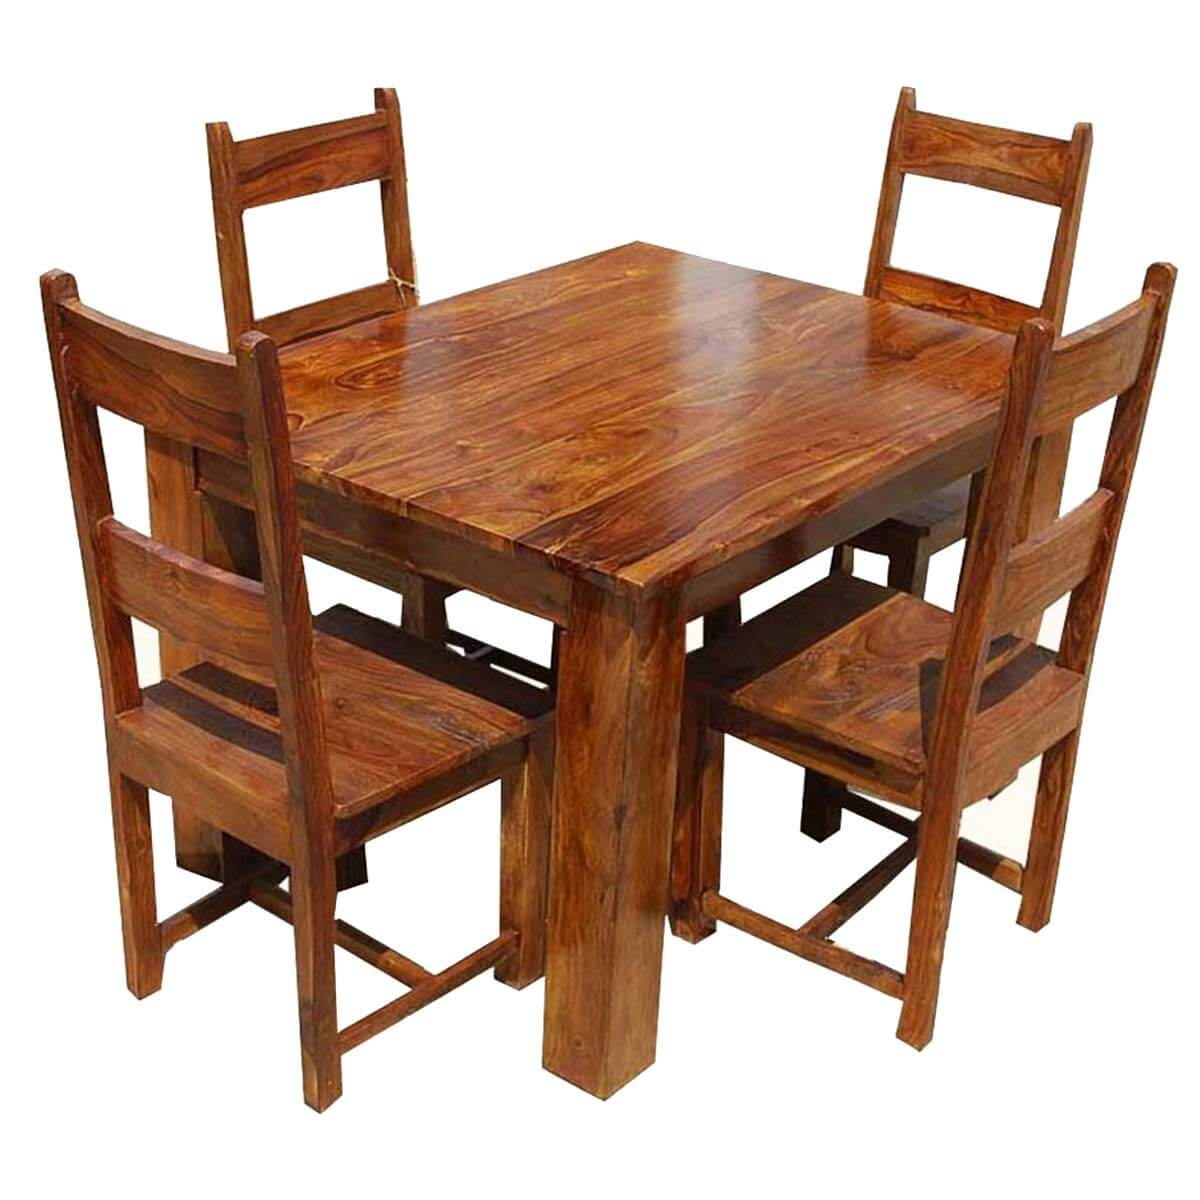 Rustic mission santa cruz solid wood dining room set for 4 for Dining room sets for 4